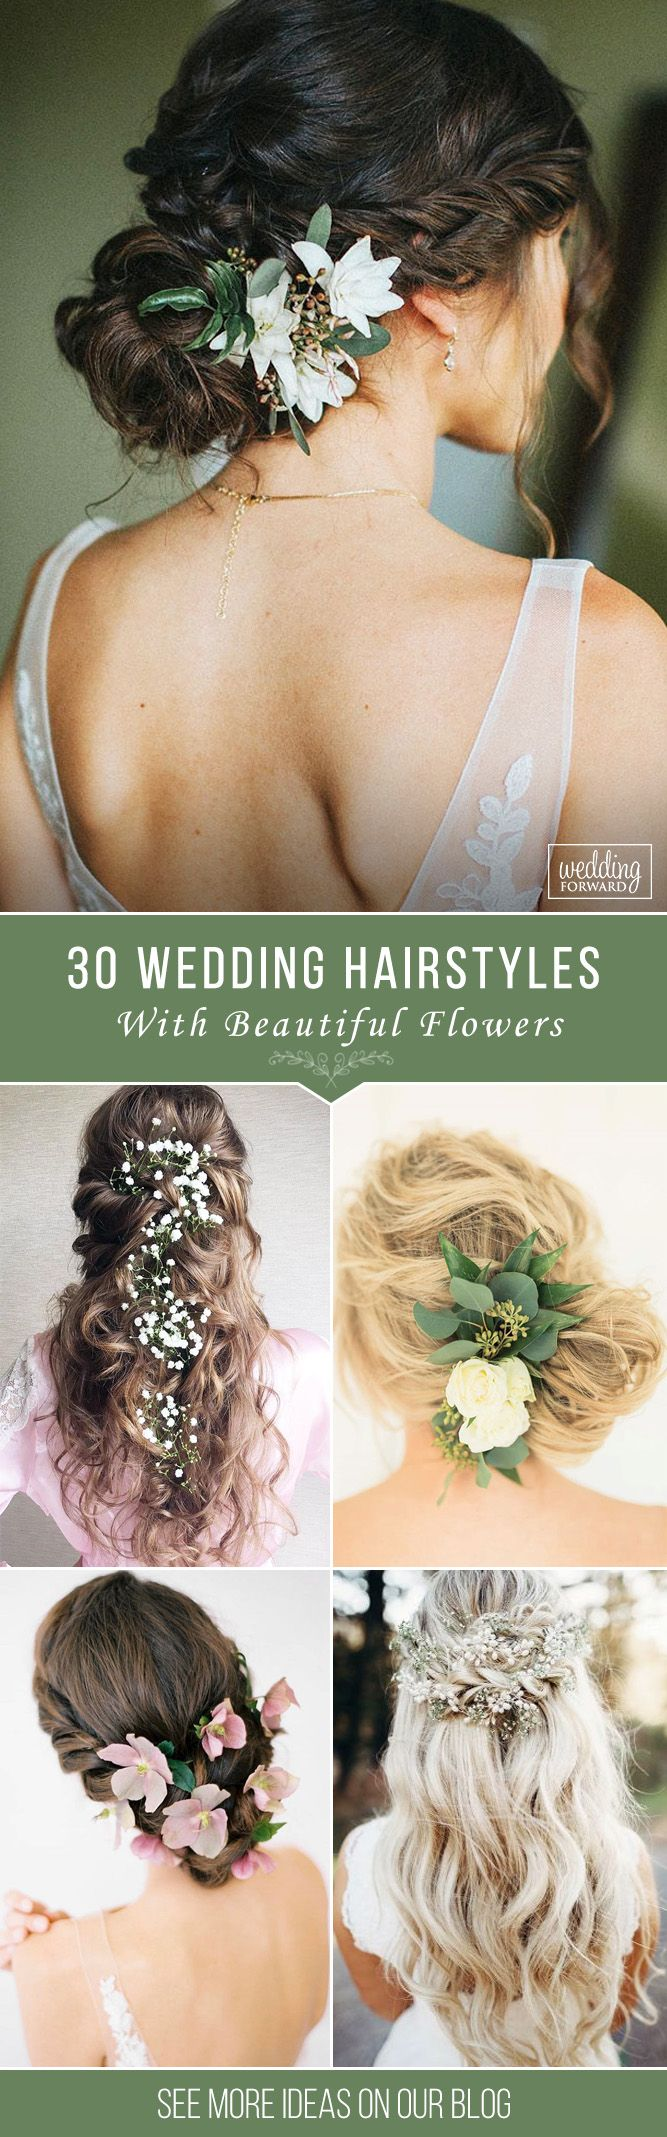 30 Unforgettable Wedding Hairstyles With Flowers ❤ To emphasize tenderness, br...